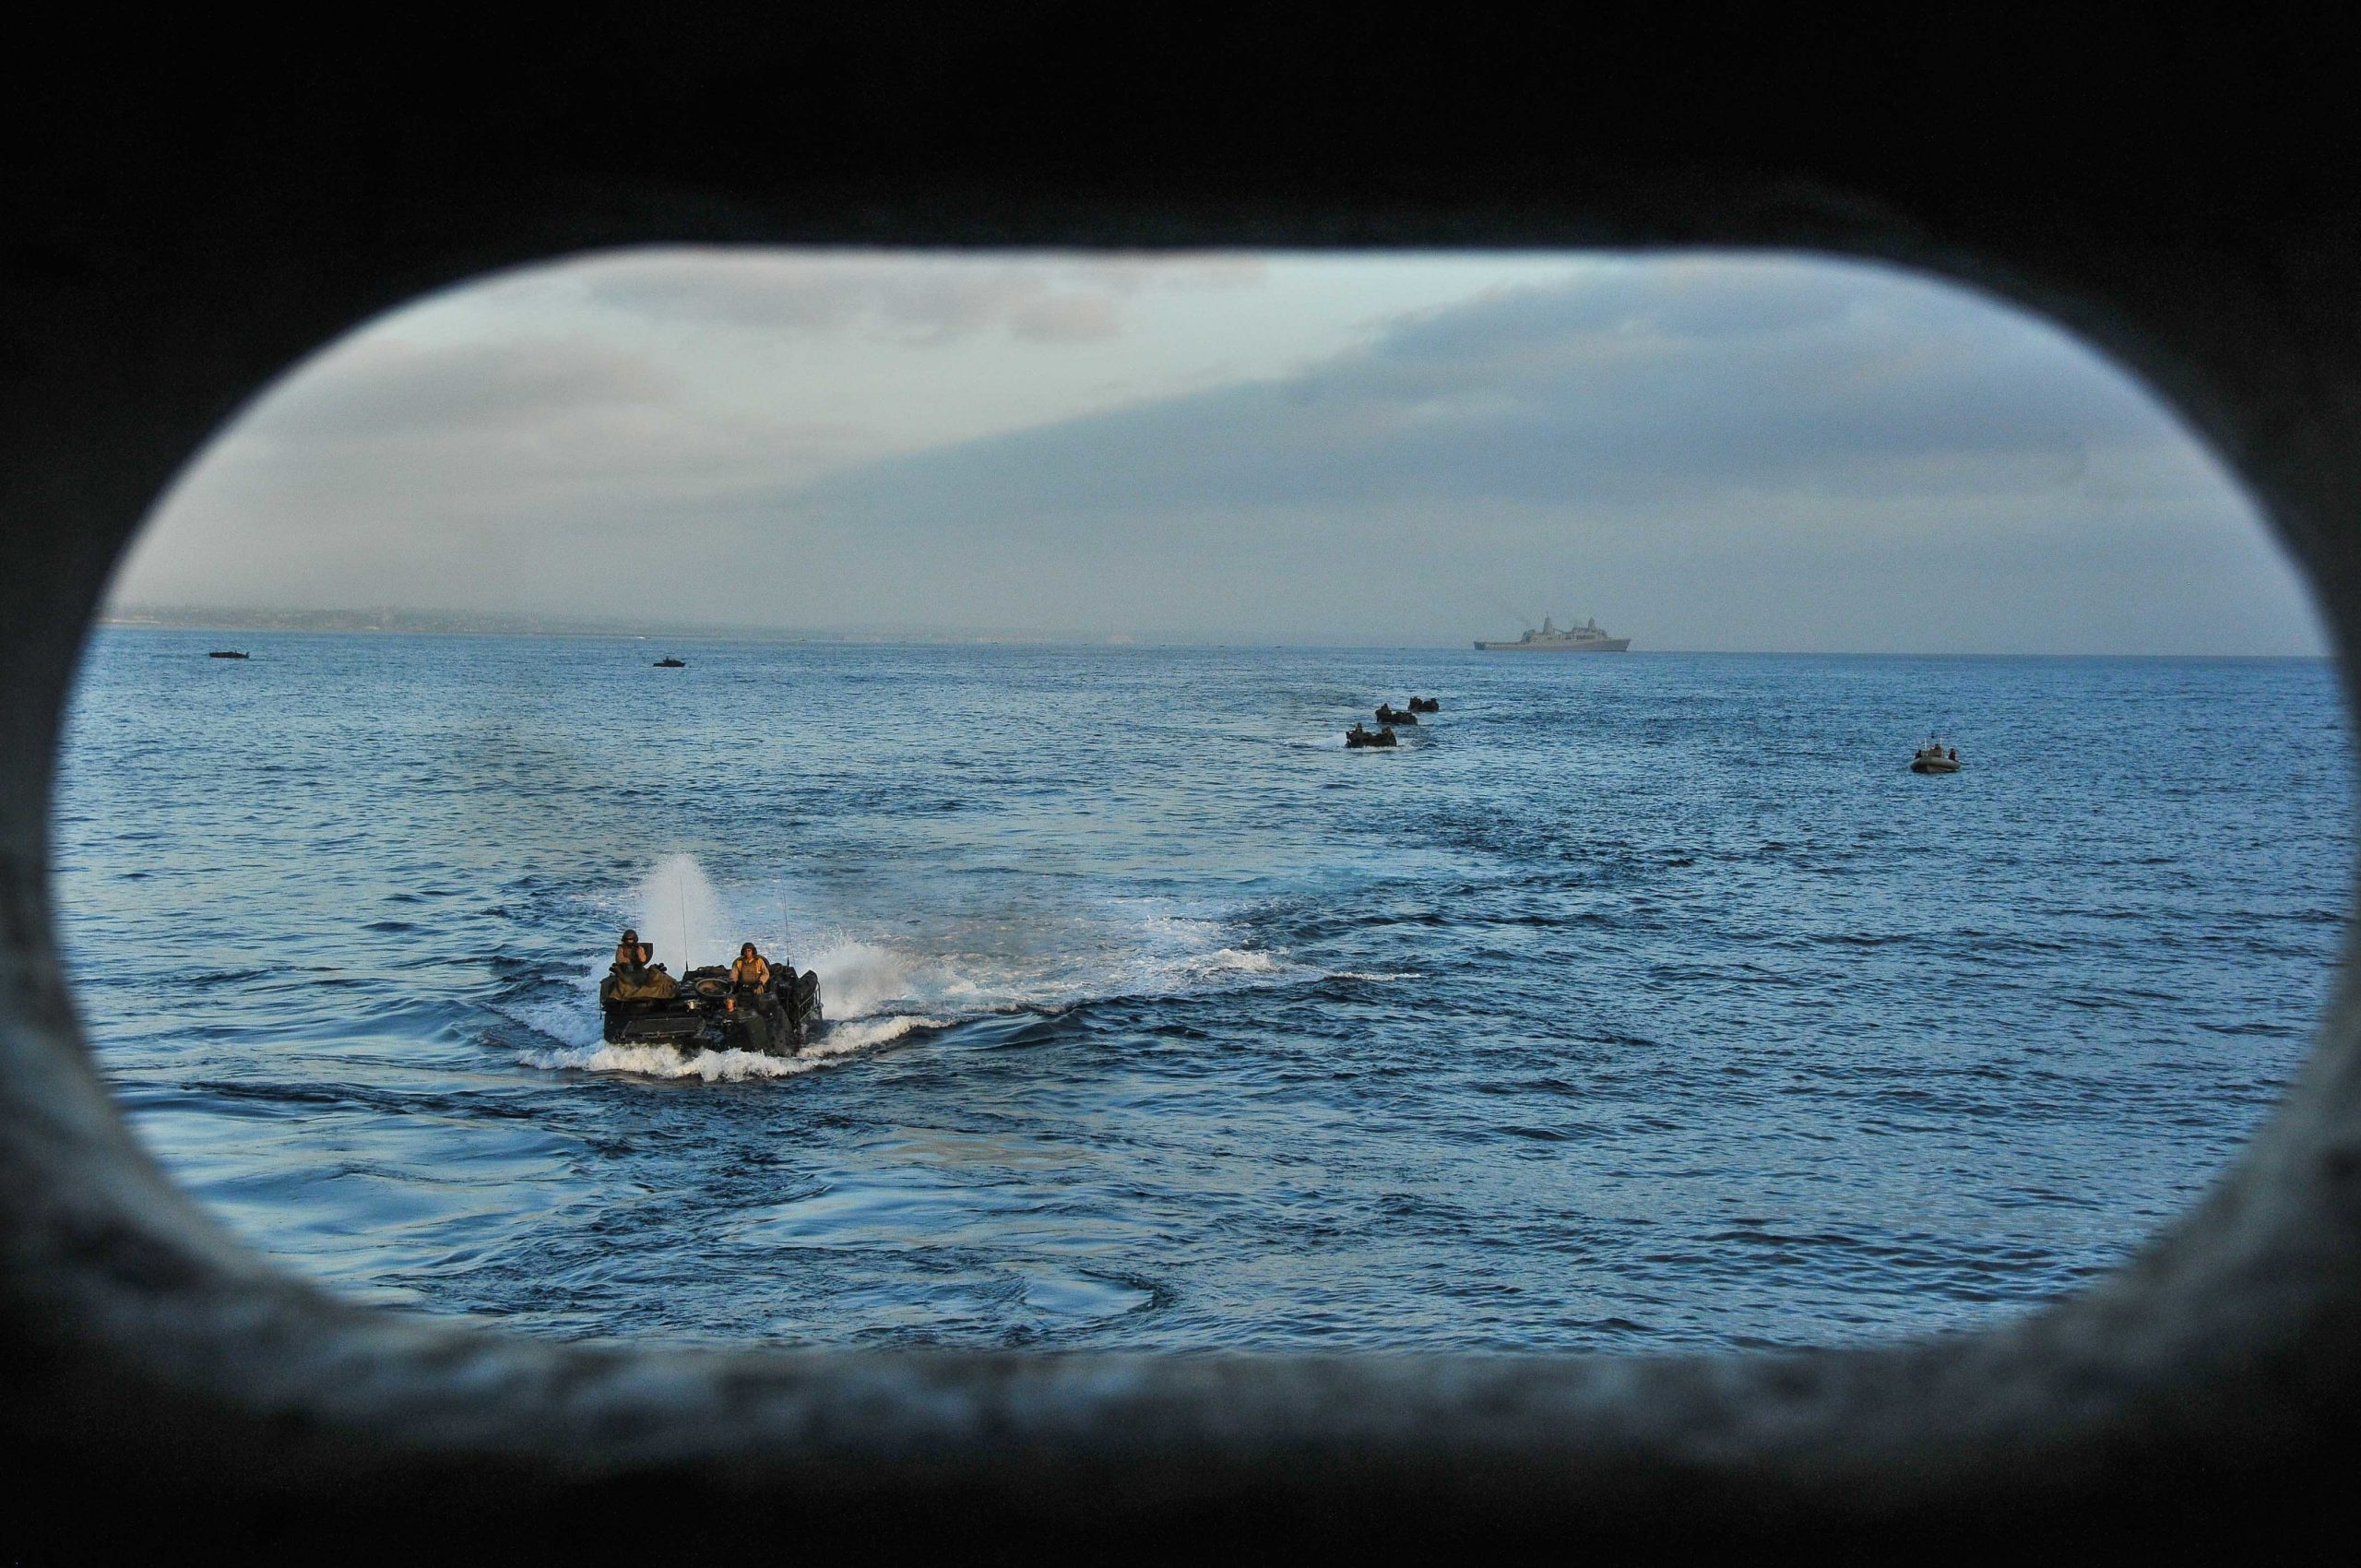 150831-N-WK391-032 PACIFIC OCEAN (August 31,2015) Amphibious assault vehicles prepare to enter the well deck of the amphibious transport dock ship USS New Orleans (LPD 18), during Exercise Dawn Blitz 2015 (DB-15). DB-15, being conducted from Aug. 31- Sept. 9, 2015 by Expeditionary Strike Group 3 (ESG-3) and 1st Marine Expeditionary Brigade (1stMEB), is a multinational training exercise between the U.S., Japan, Mexico and New Zealand which conducts live, simulated, and constructive operations to enhance each country's ability to activate and deploy an Amphibious Task Force with speed and effectiveness in support of the full range of military operations as required by combatant commanders. (U.S. Navy photo by Mass Communications Specialist 3rd Class Brandon Cyr/Released)